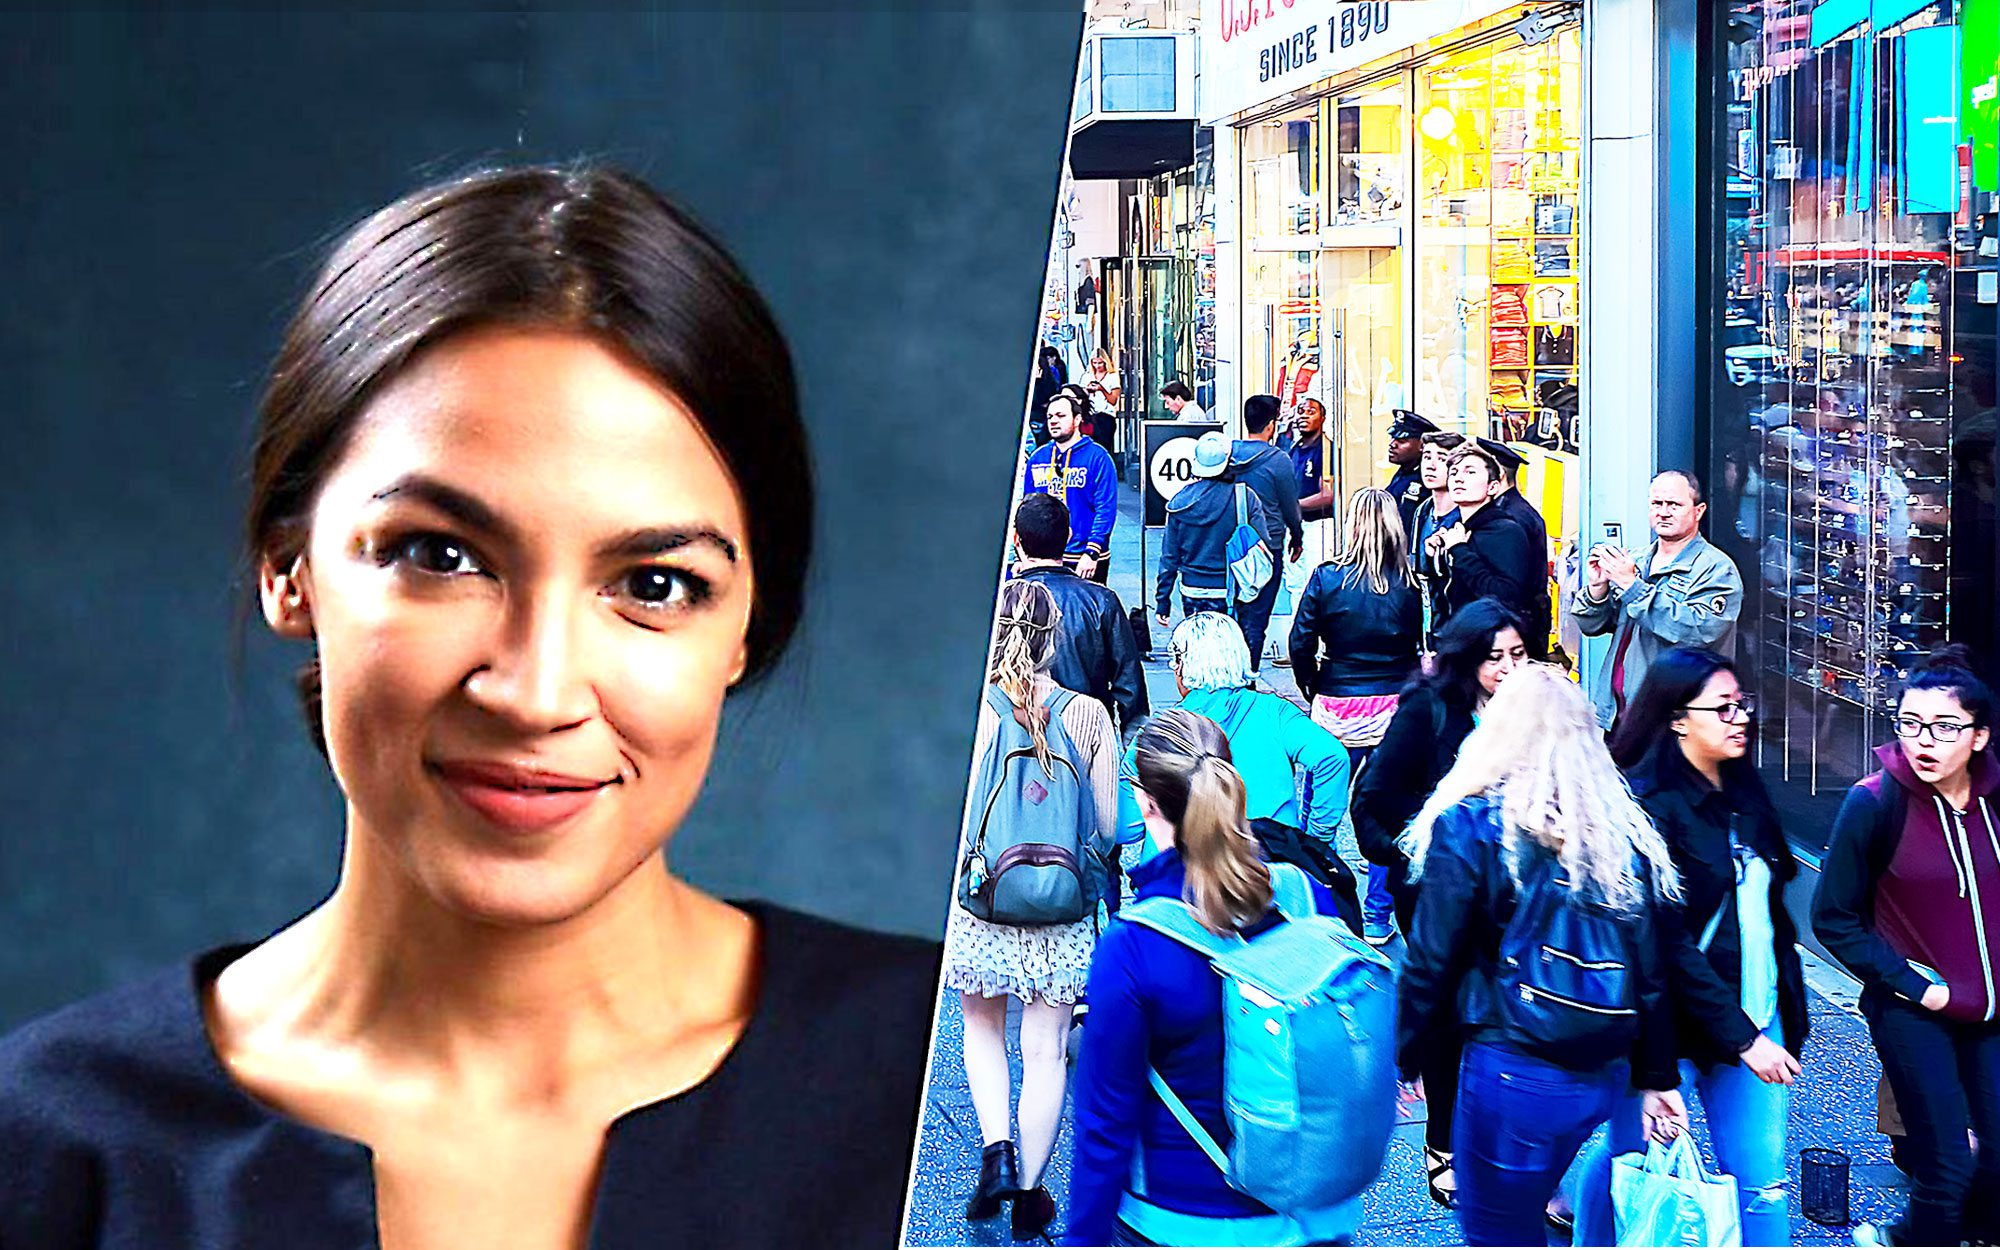 Ocasio-Cortez Uses Expensive Croissants to Call for a Fair Minimum Wage